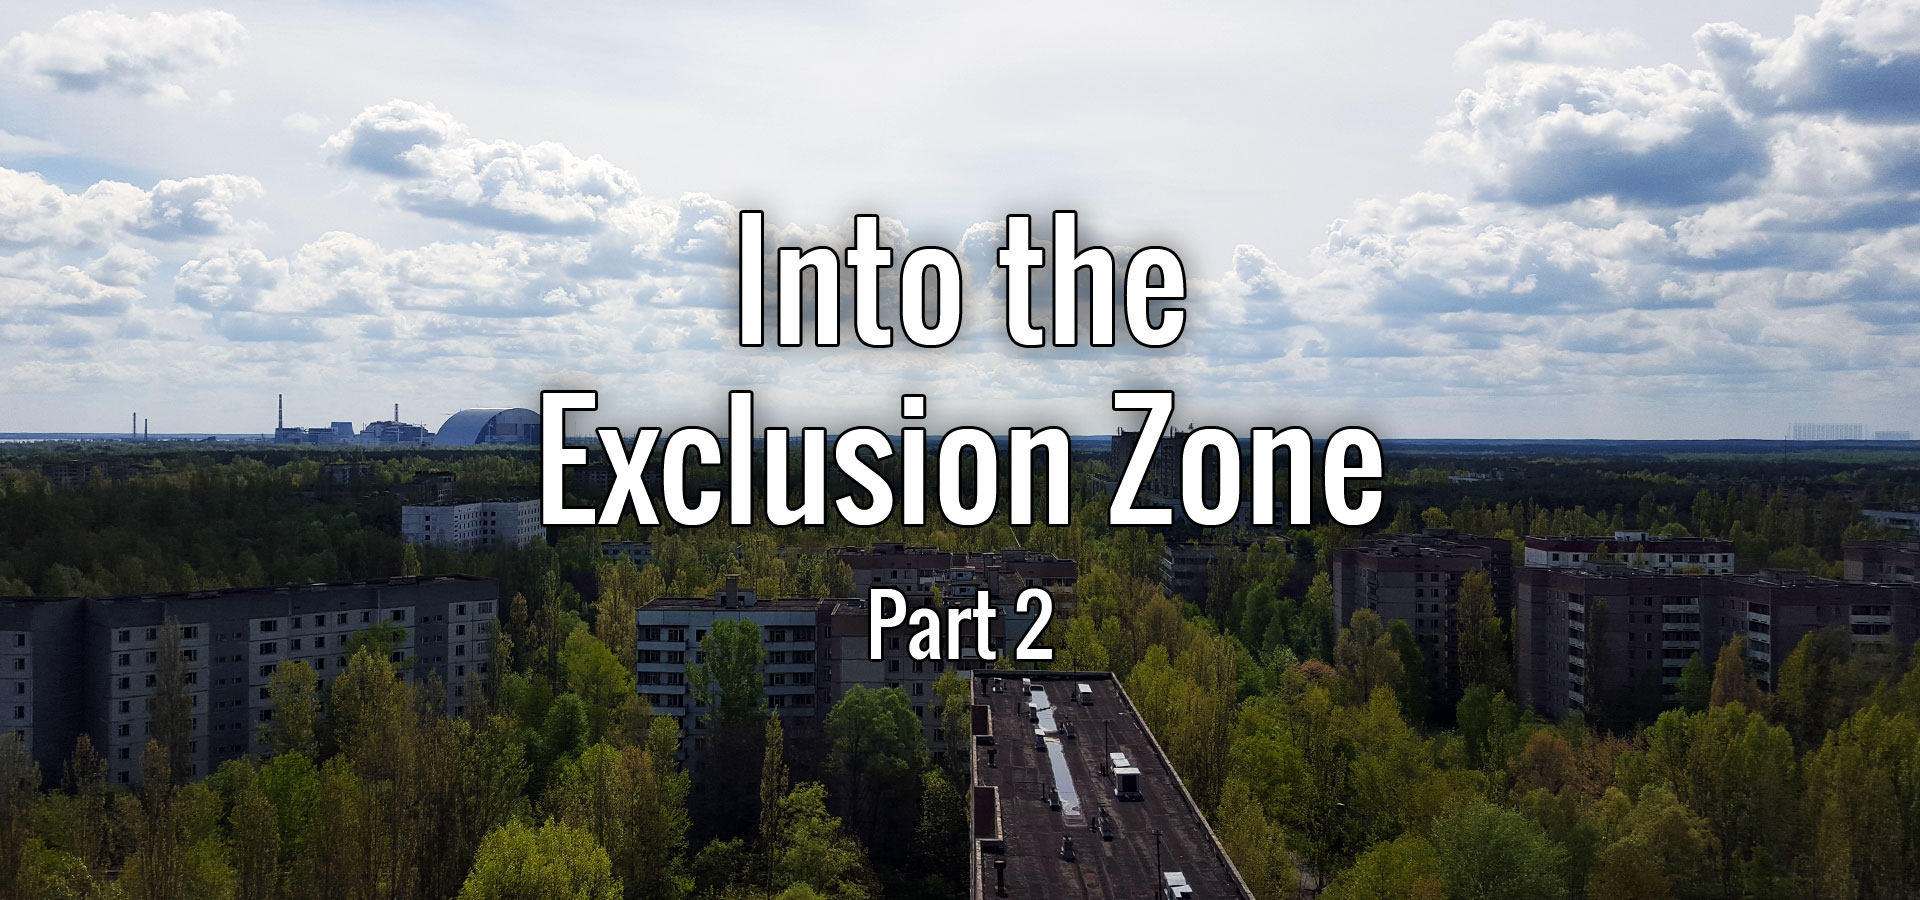 Welcome to the Exclusion Zone